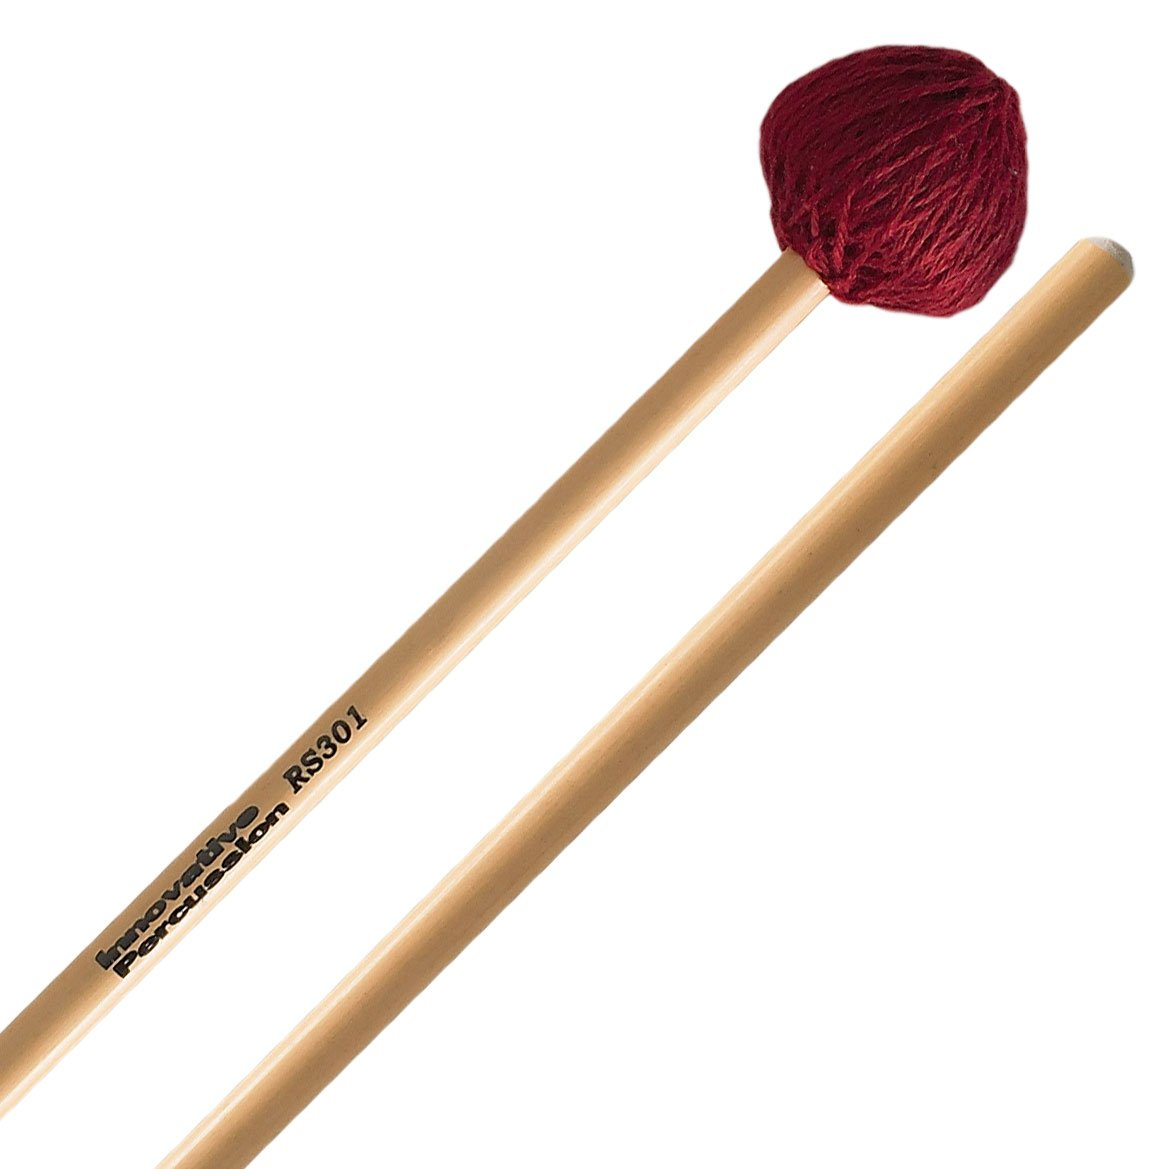 Innovative Percussion - Rattan Series Concert Vibraphone/Marimba Mallets-Percussion-Innovative Percussion-RS301 Hard-Music Elements